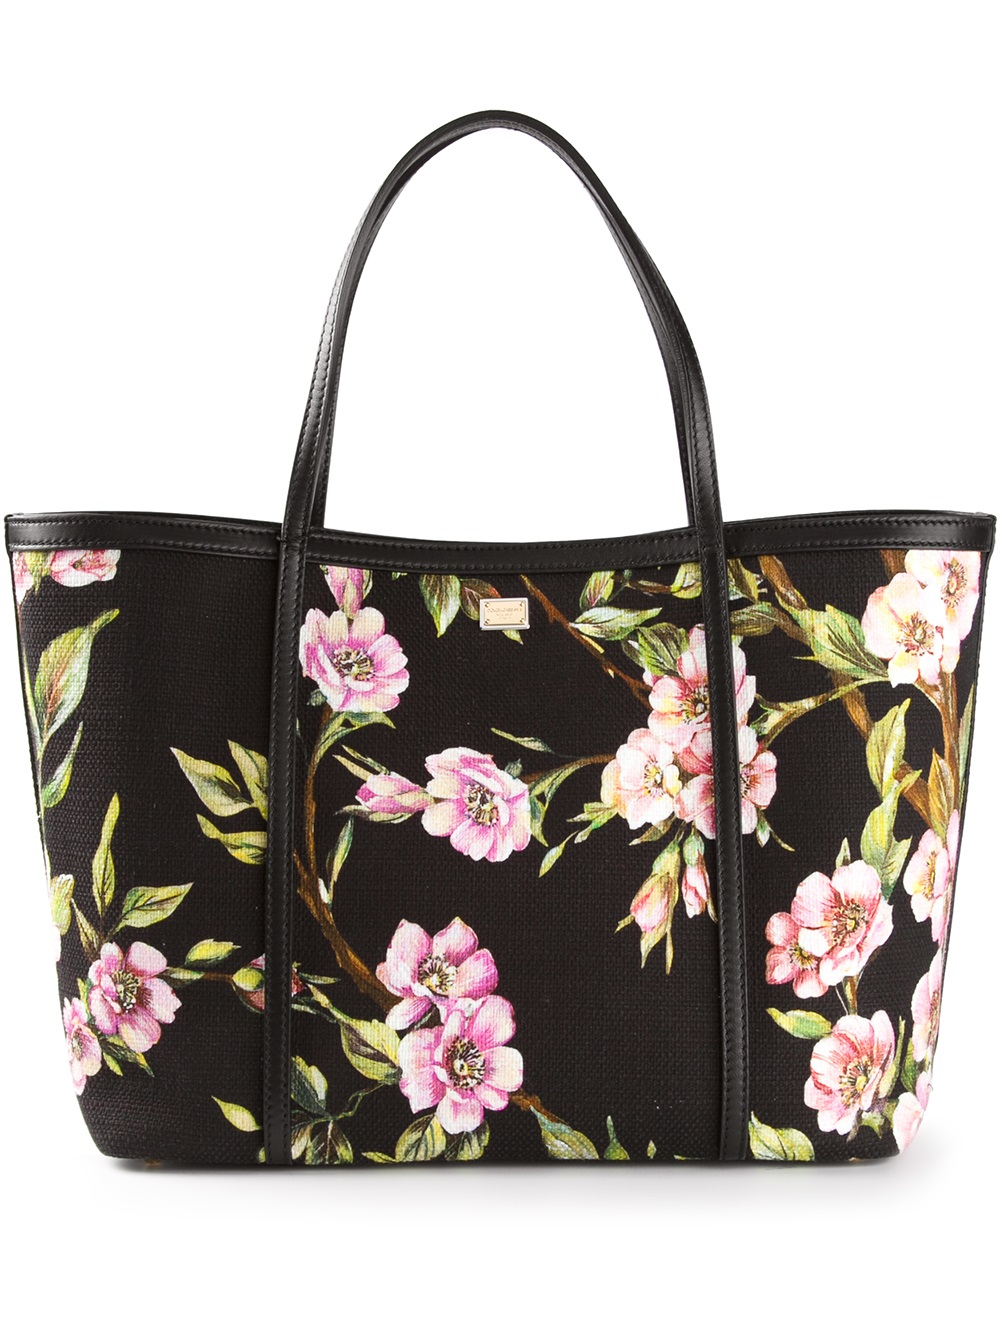 657832c77a Lyst - Dolce   Gabbana Large Floral Print Tote in Black